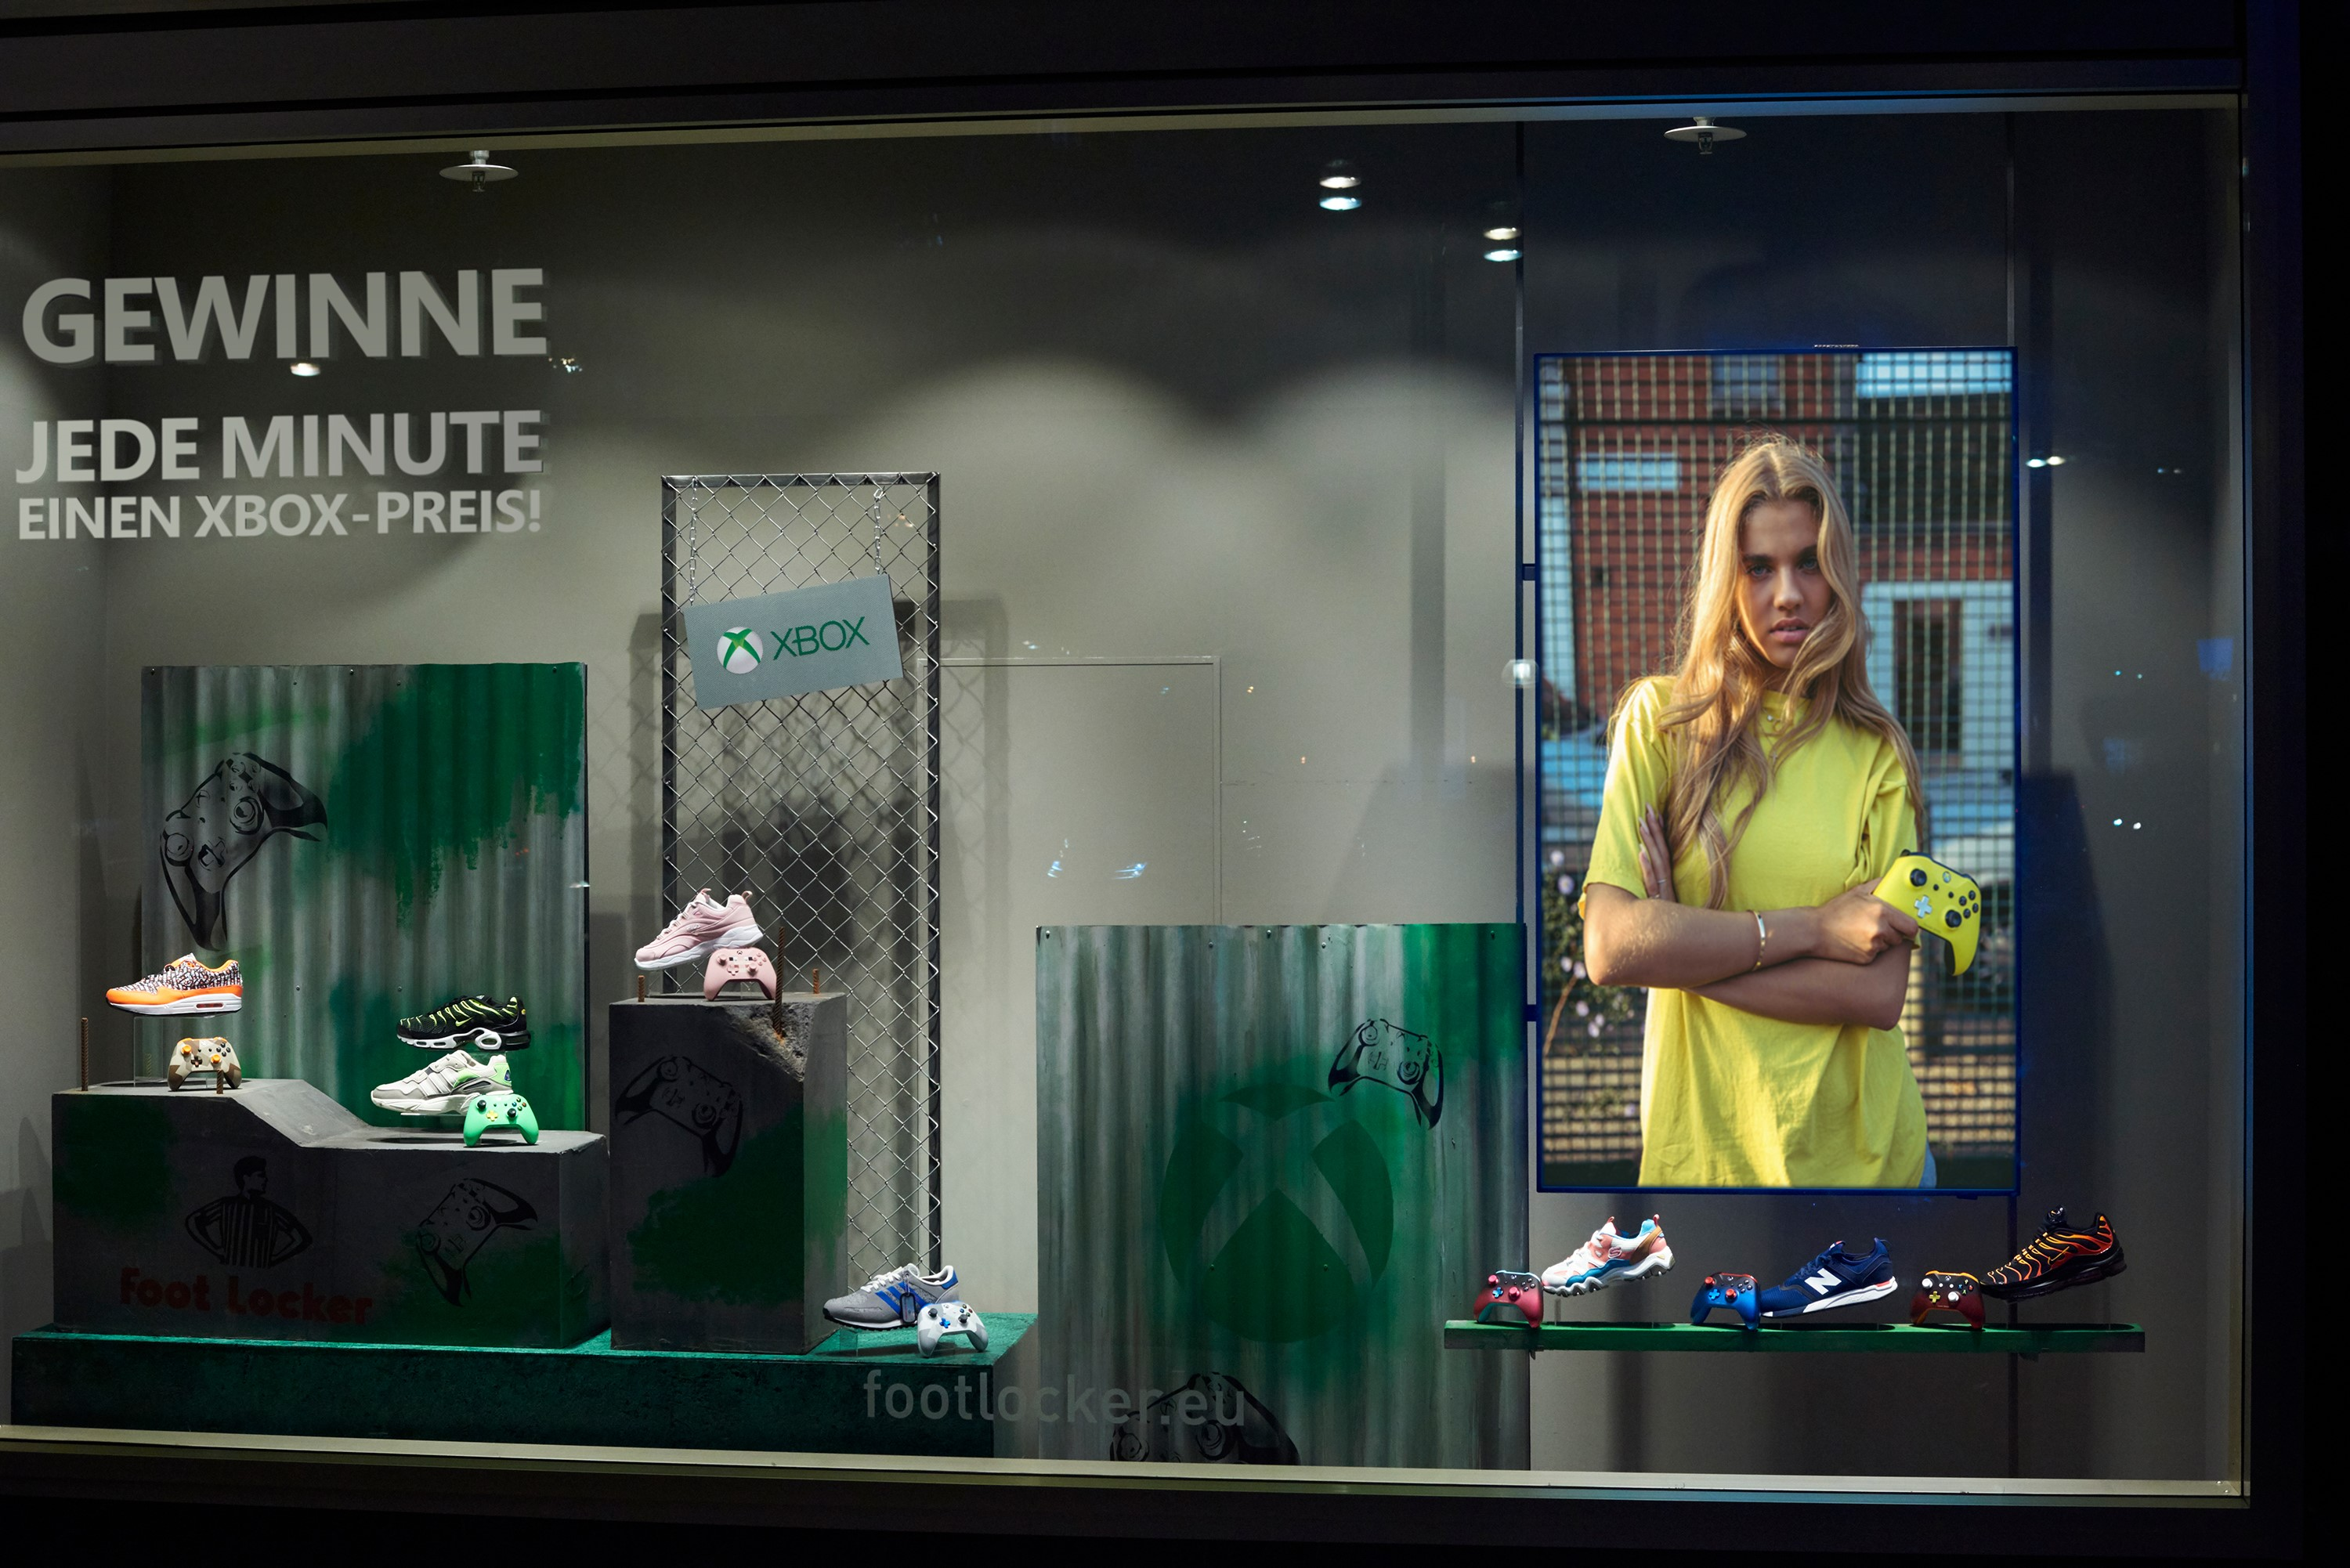 Video For Foot Locker-Partnerschaft: Tolle Xbox-Preise beim Sneaker-Kauf